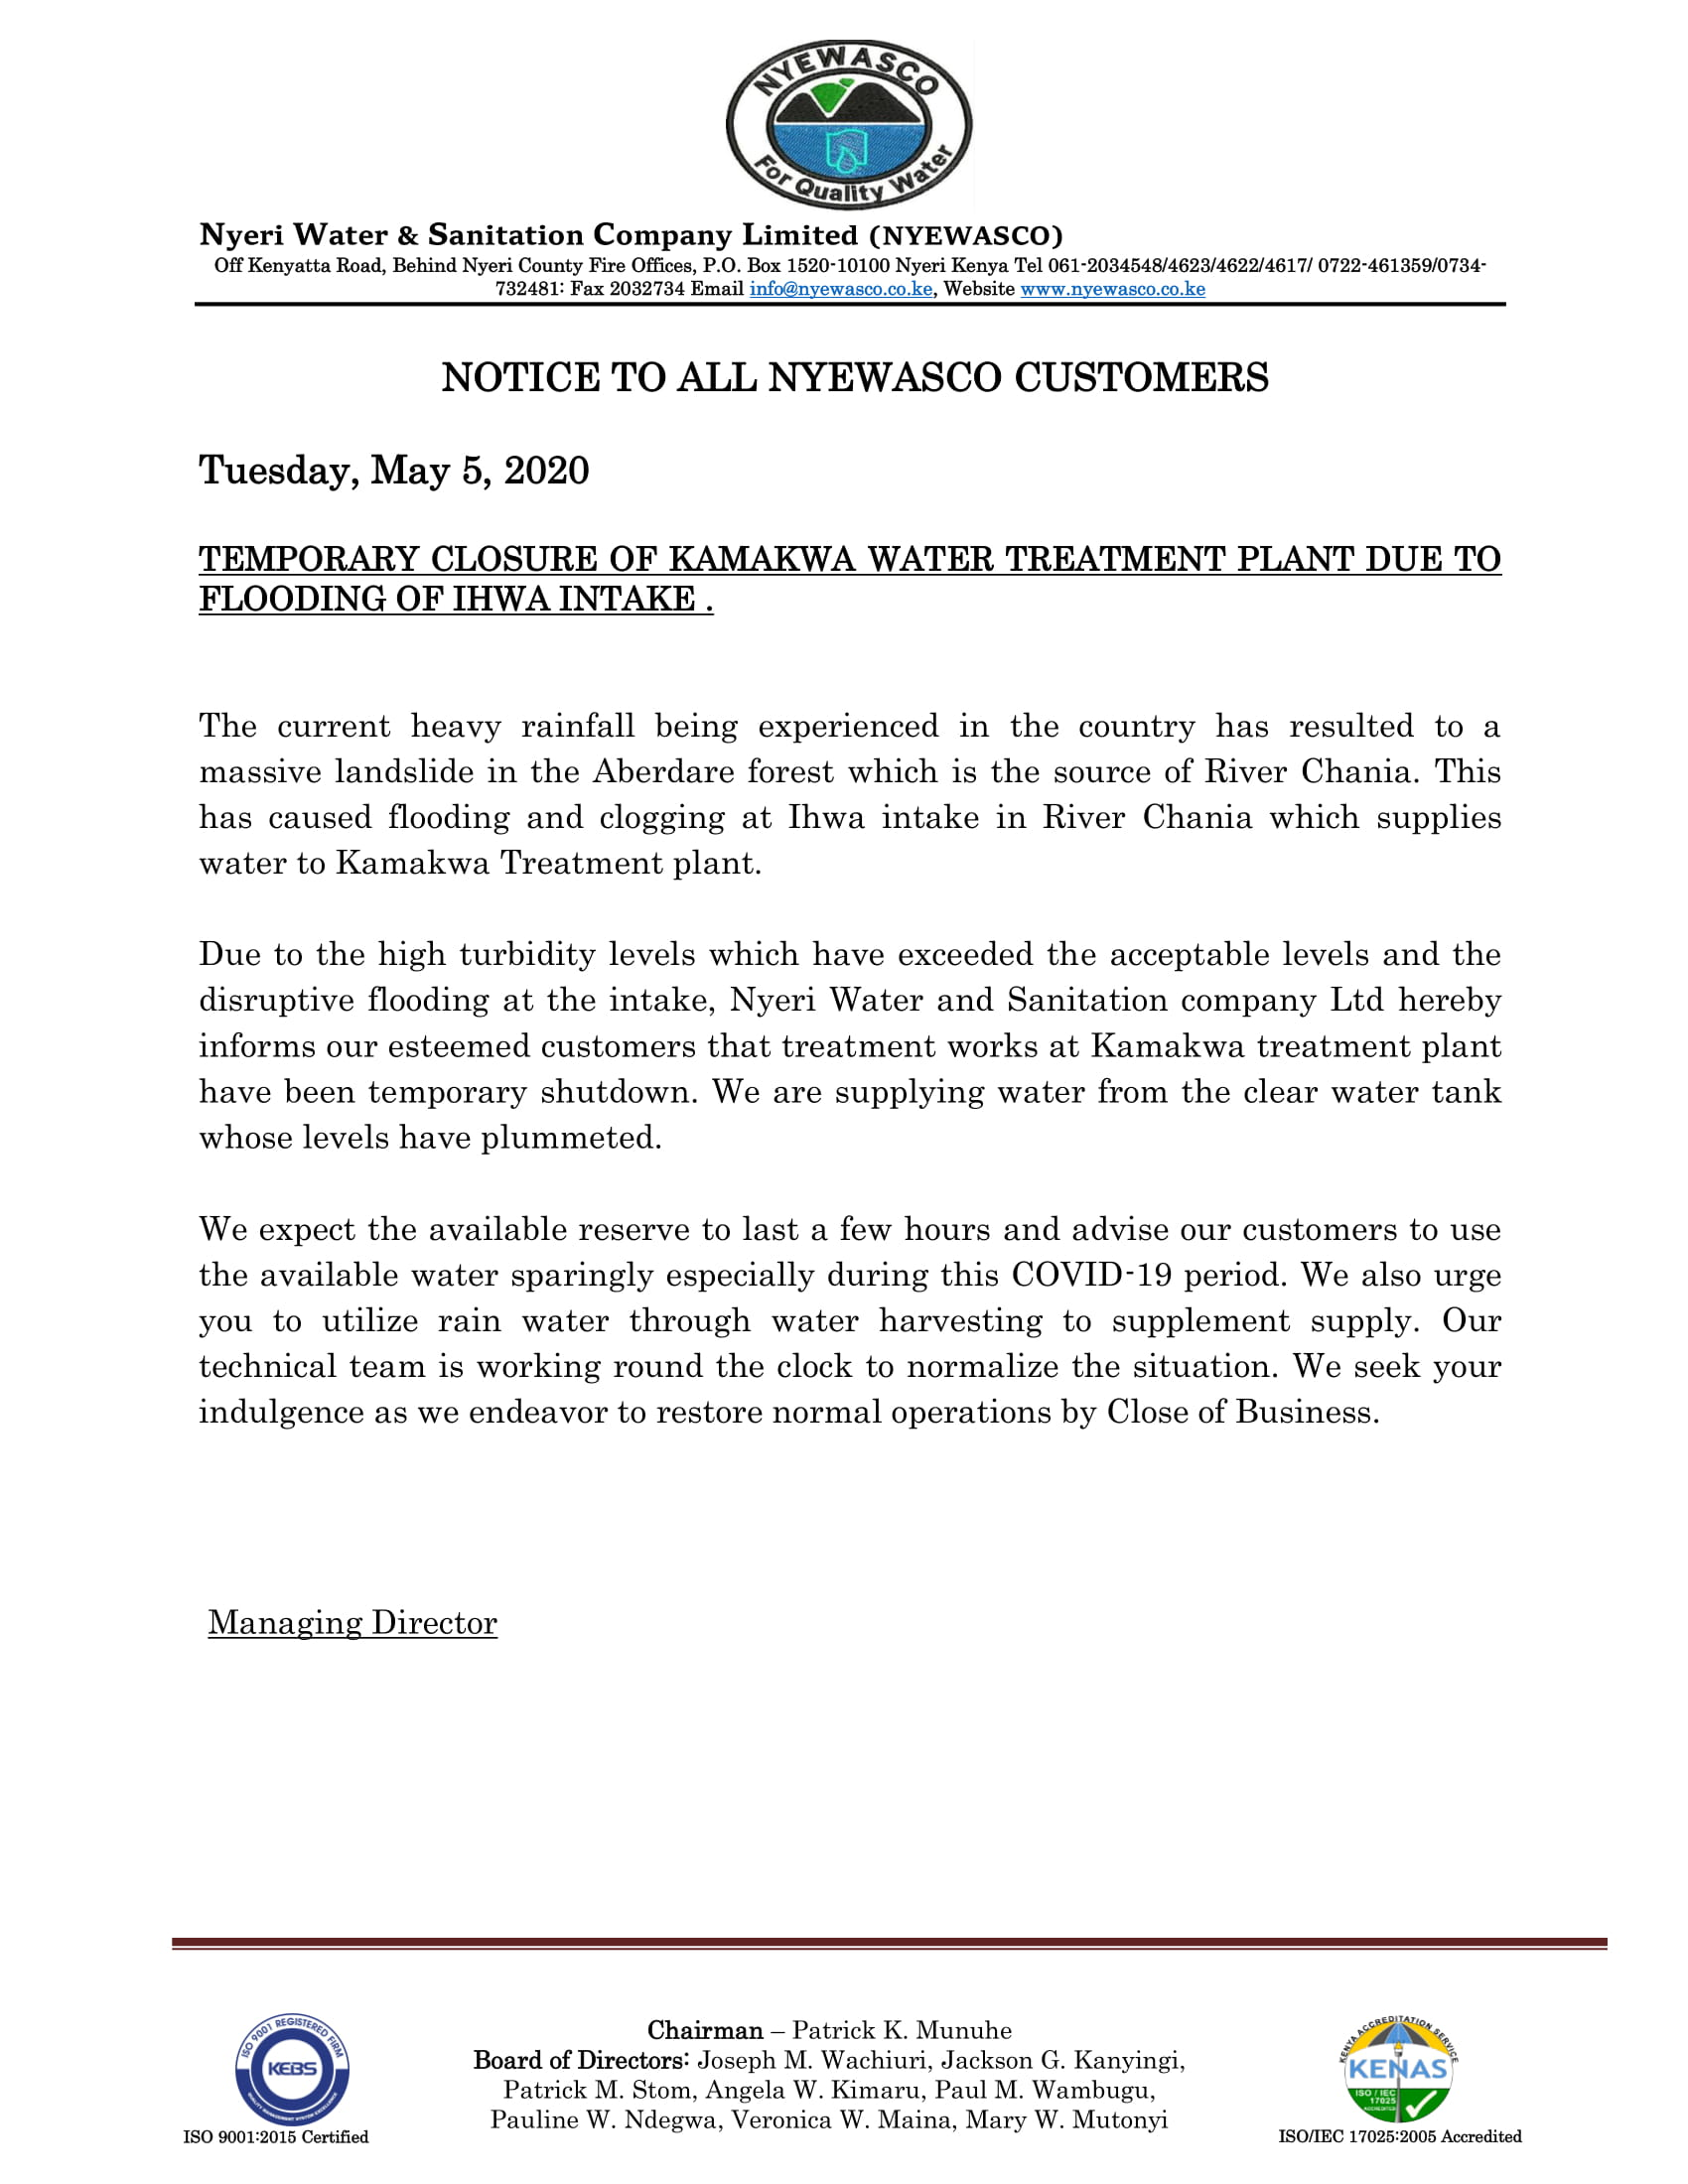 Notice of Temporary Closure of Kamakwa Treatment Plant